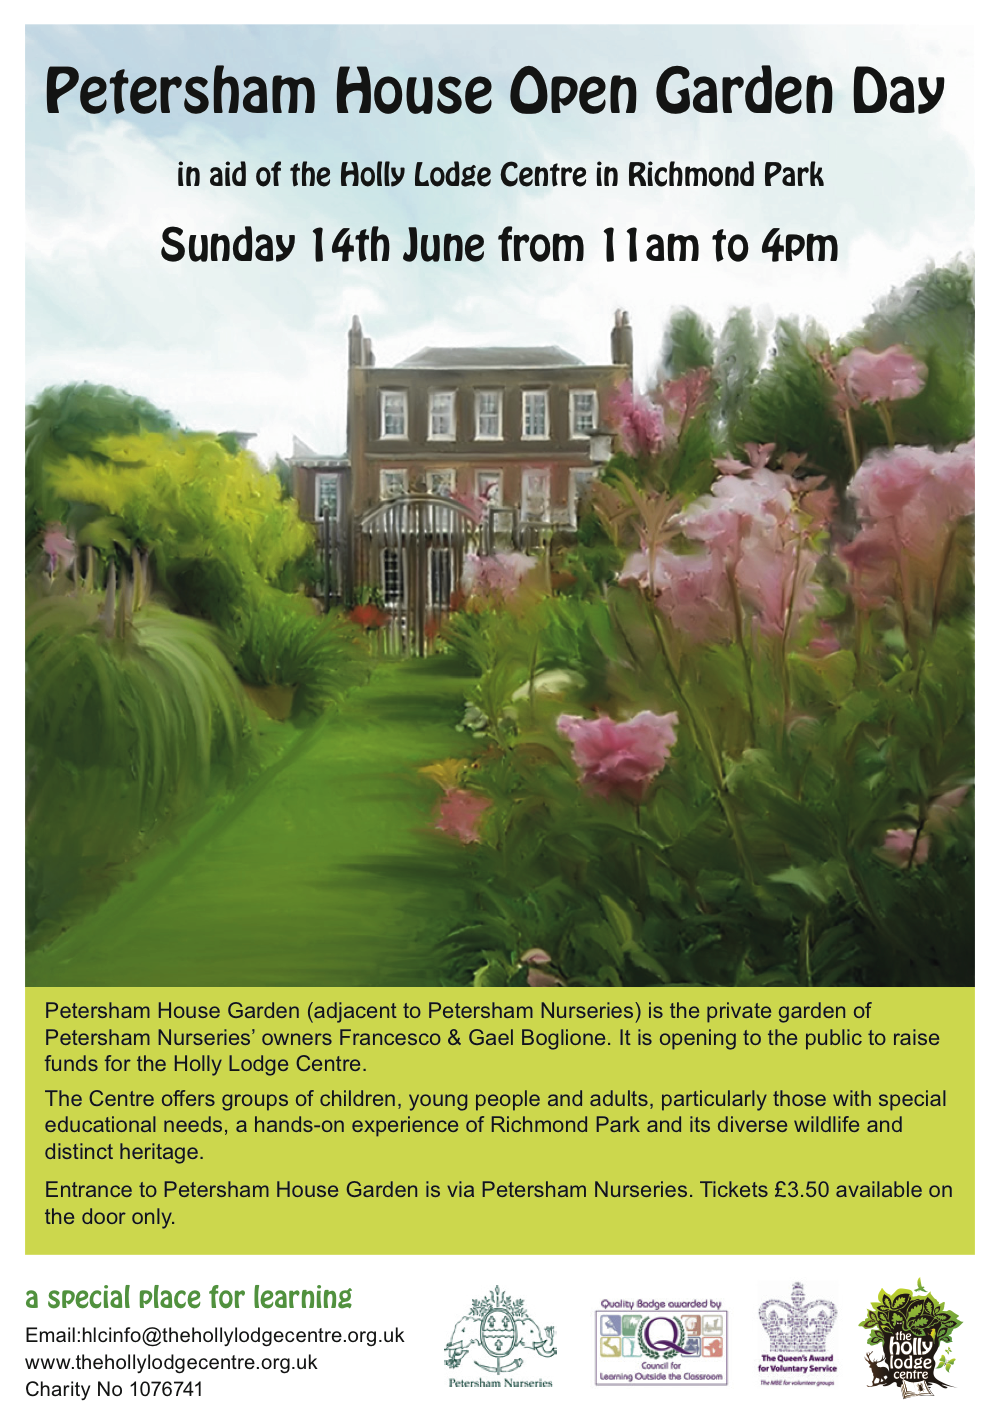 petersham house open garden in aid of holly lodge centre